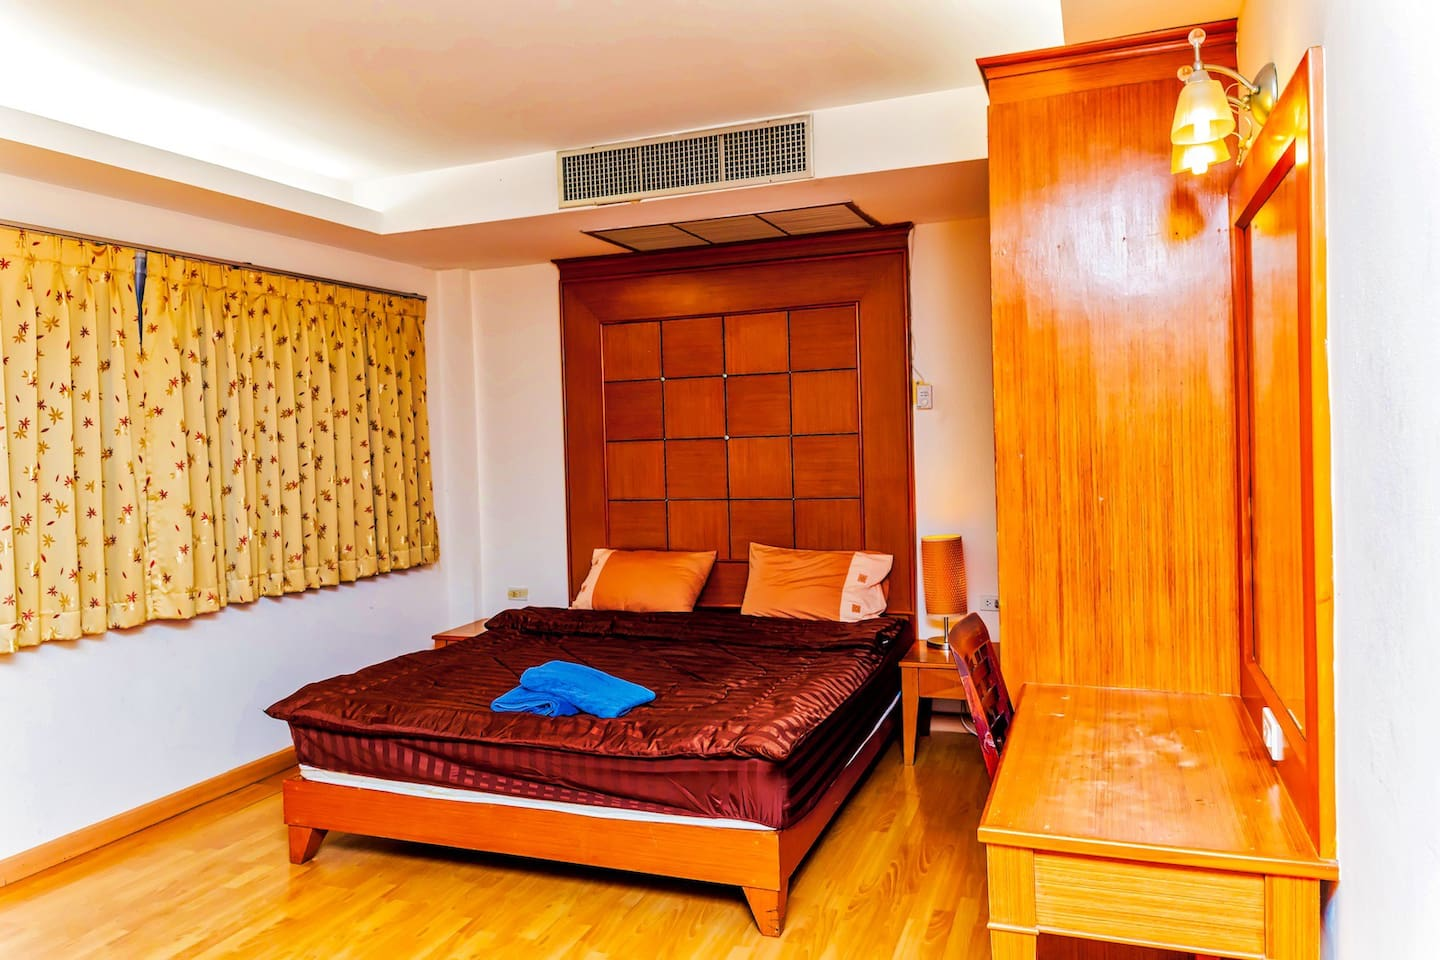 Apartment New 5 King Room in the Center of Pattaya City  Best area  photo 18752391